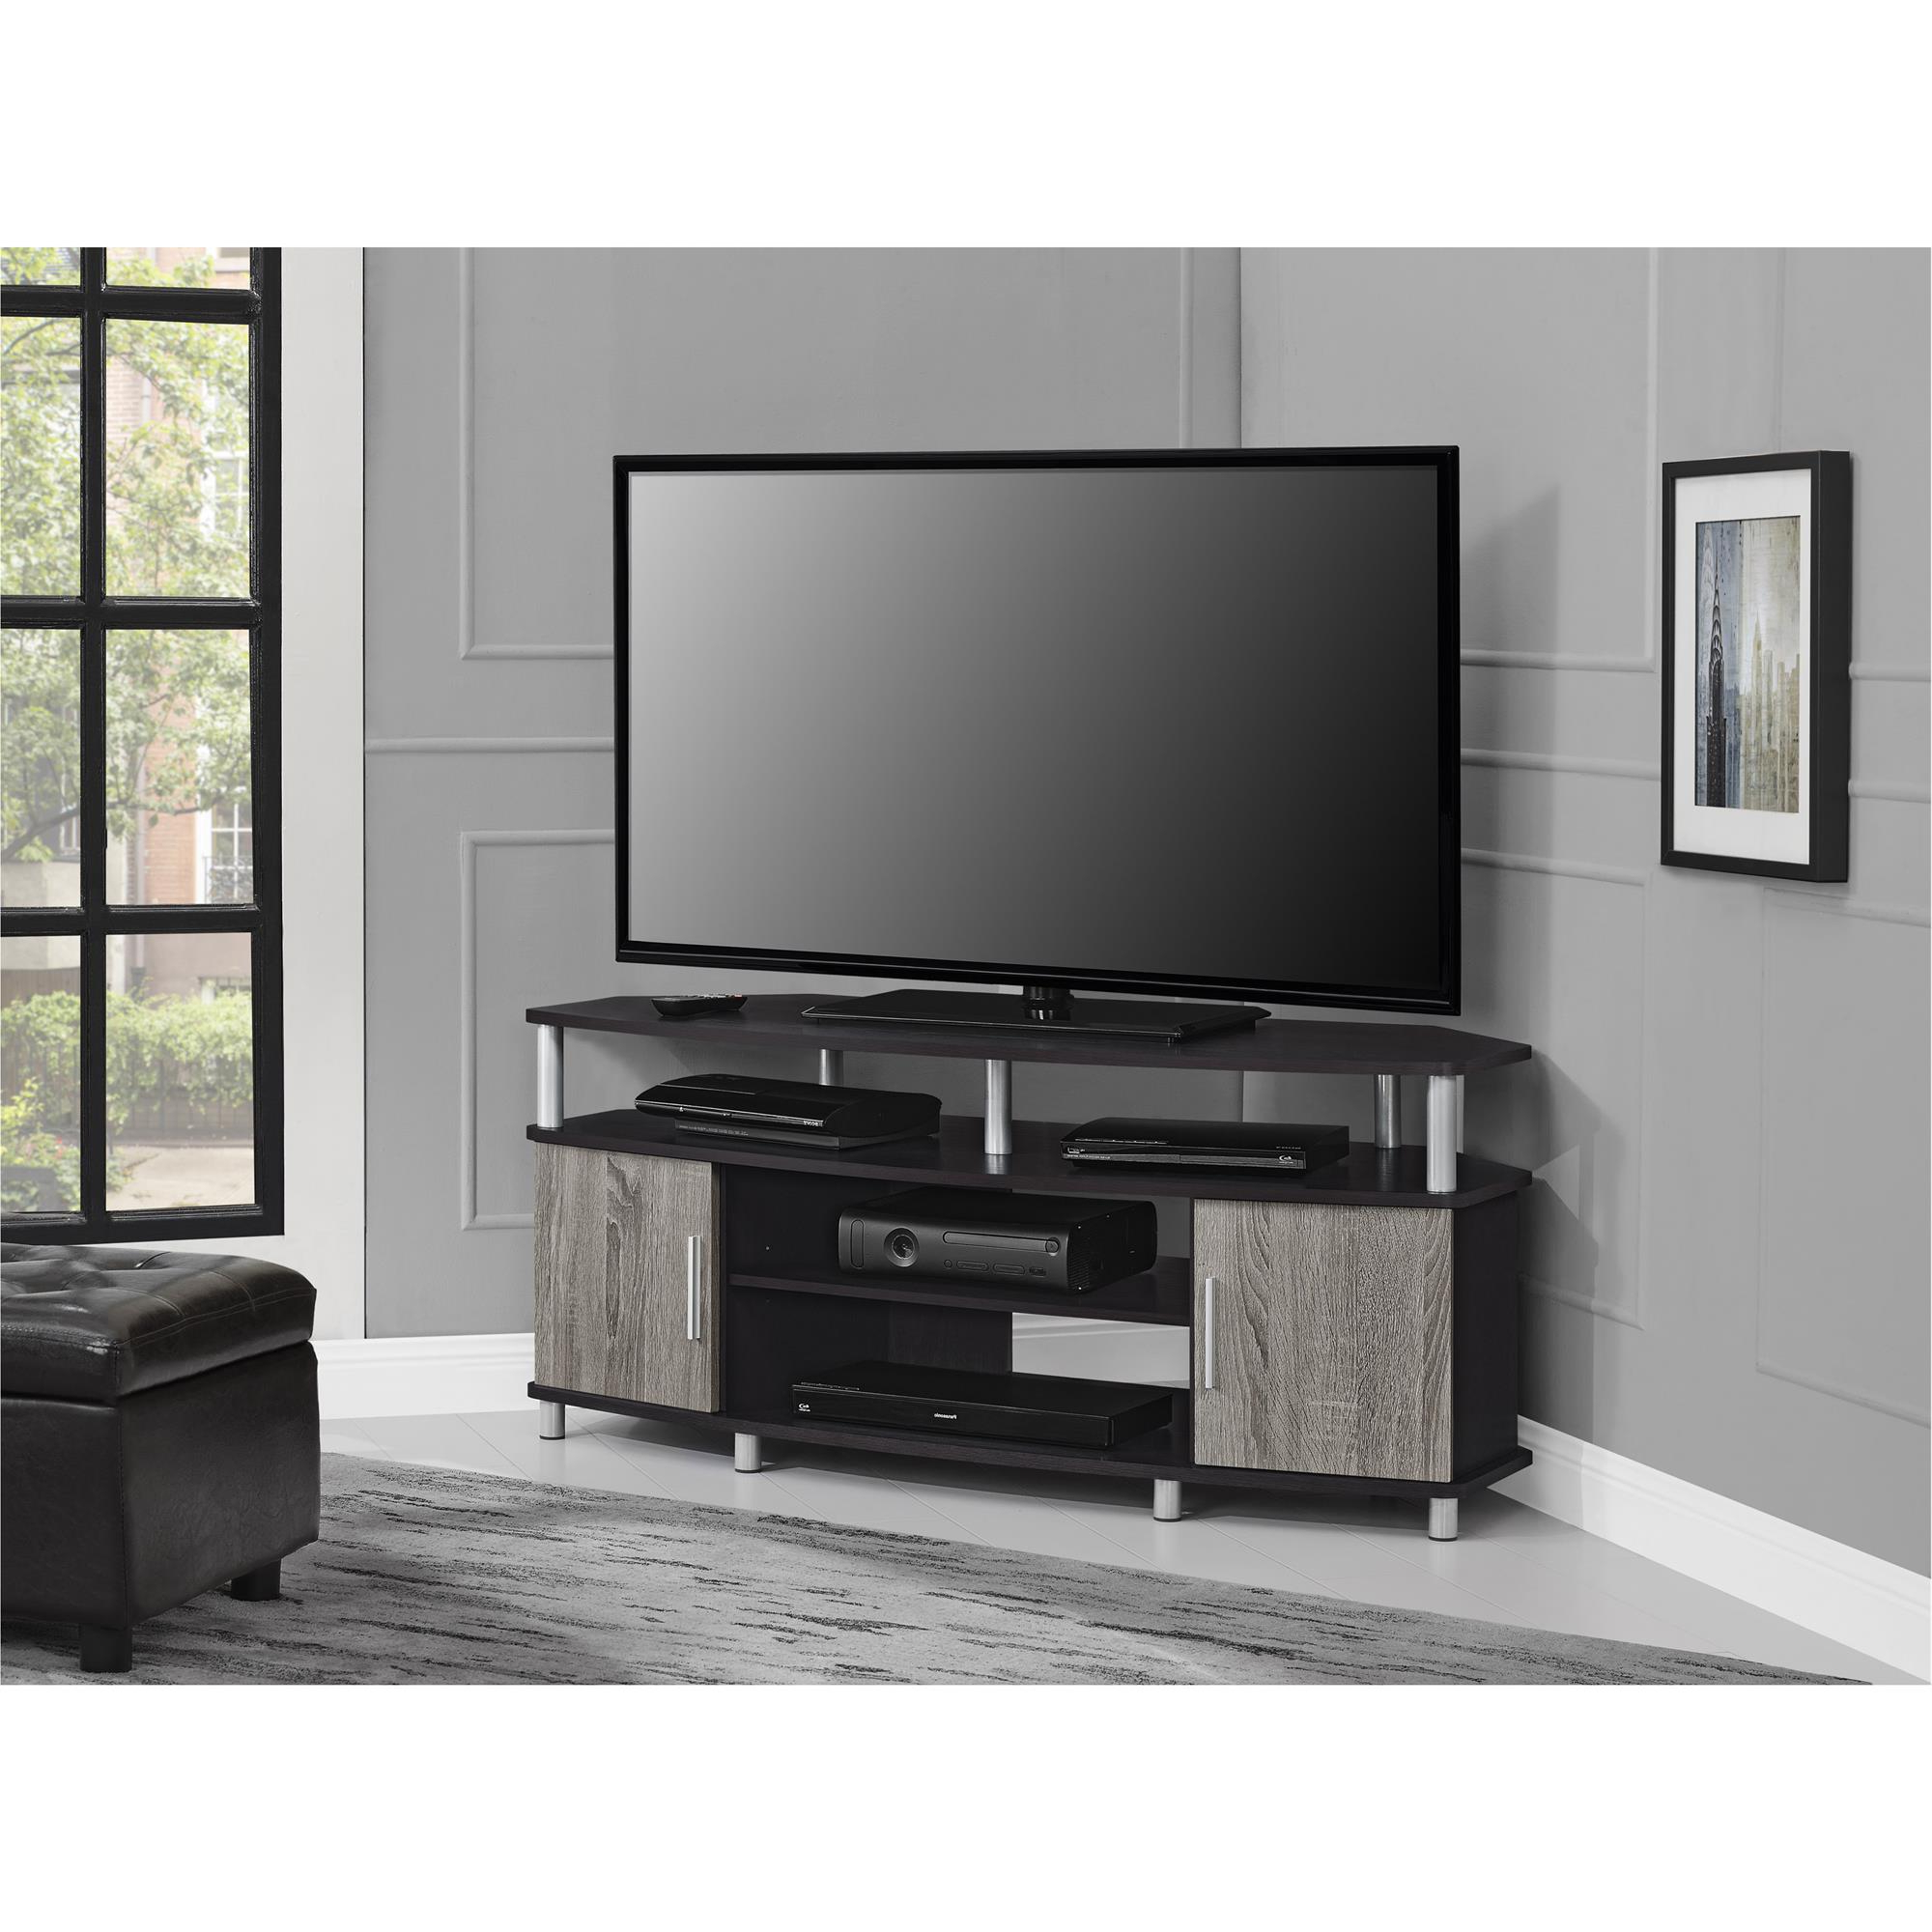 "Well Known Ameriwood Home Carson Corner Tv Stand For Tvs Up To 50"" Wide, Black Throughout Tv Stands For Corner (View 2 of 20)"